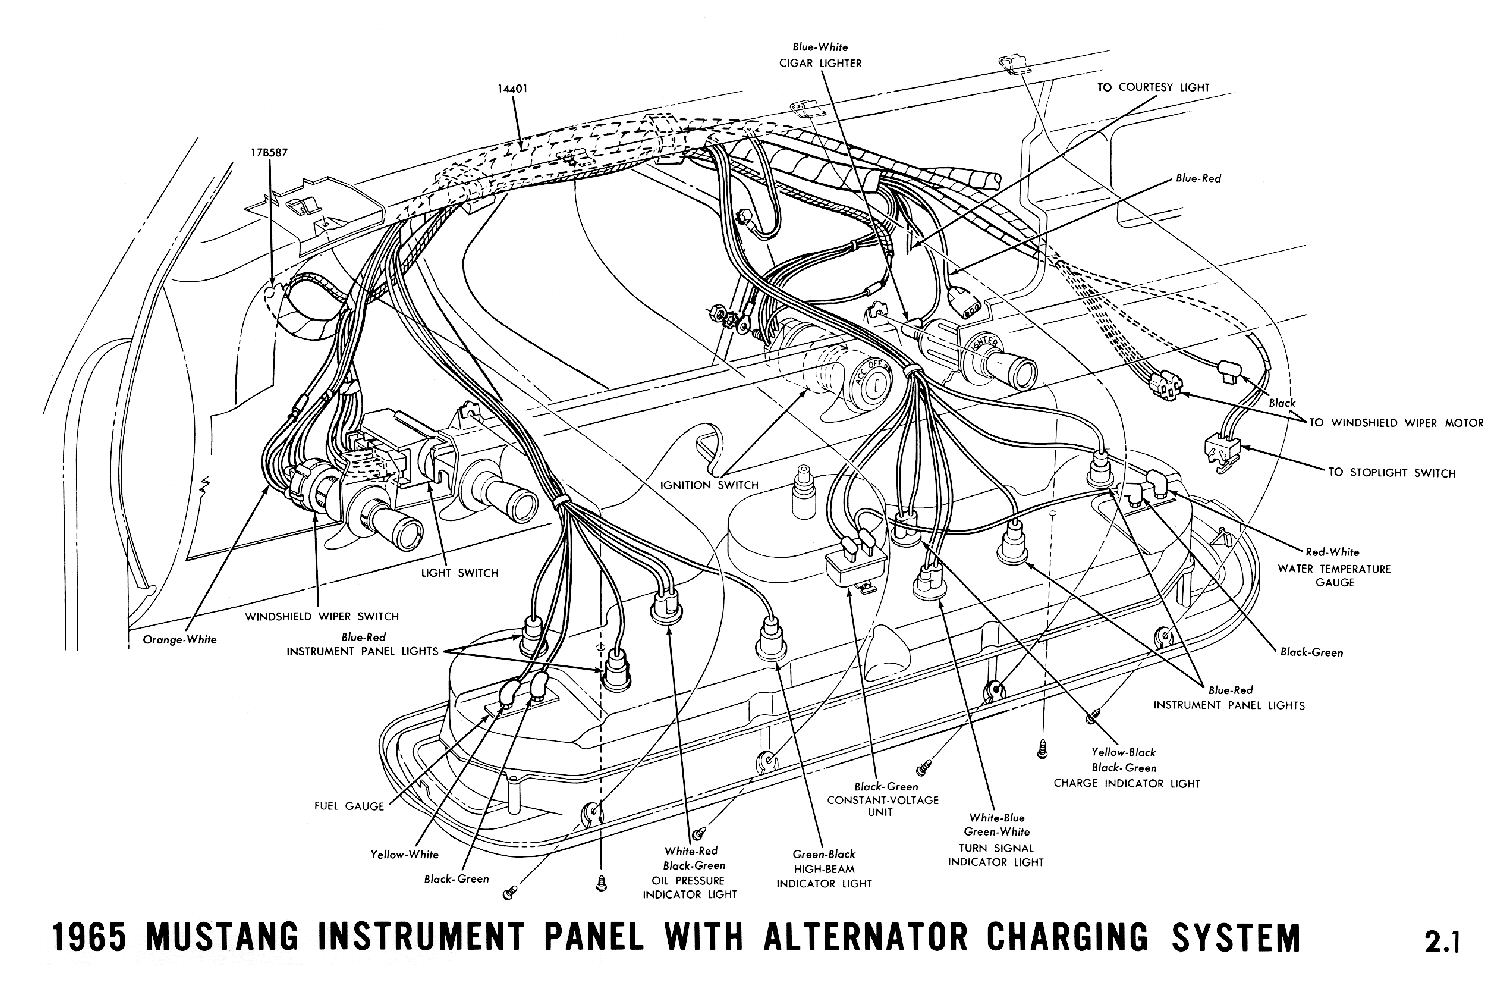 1965a mustang wiring harness diagram 66 mustang wiring diagram \u2022 free 1989 mustang wiring diagram at bayanpartner.co